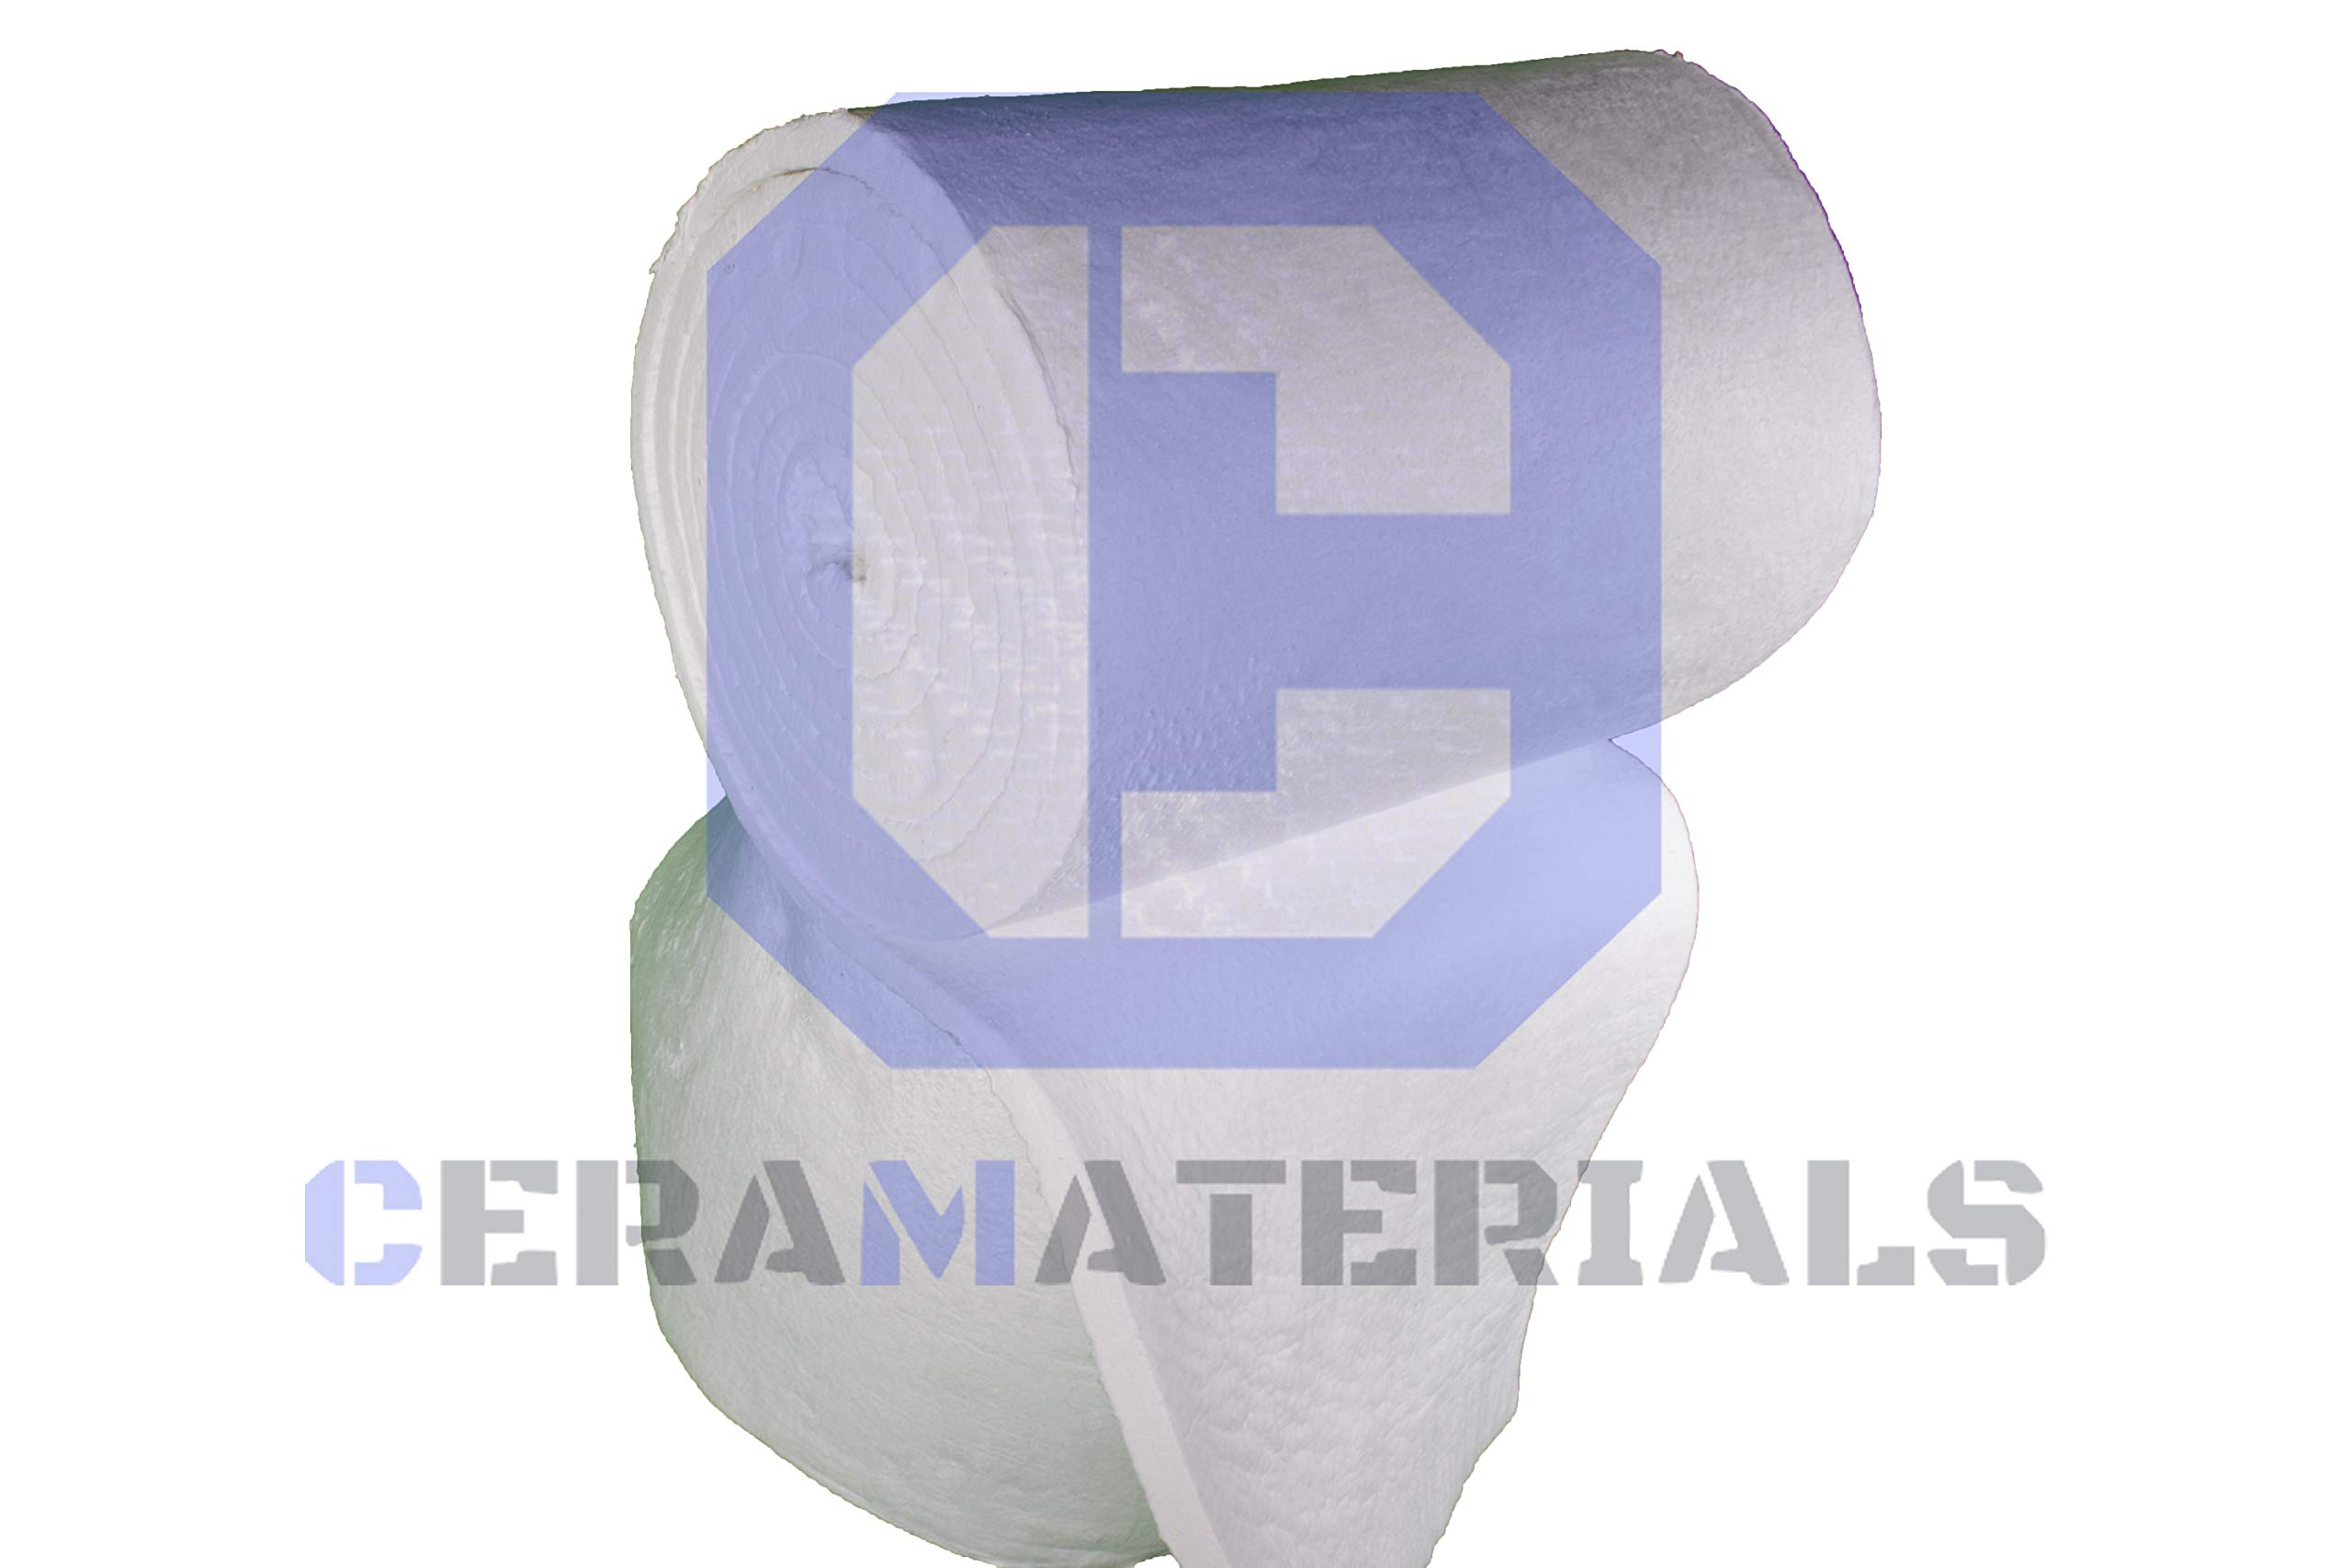 Ceramic Fiber Blanket 8#, 2300F 1/2''x24''x50' for Thermal Insulation of Stoves,Pizza Ovens, Furnaces, Kilns & More! by CeraMaterials (Image #1)